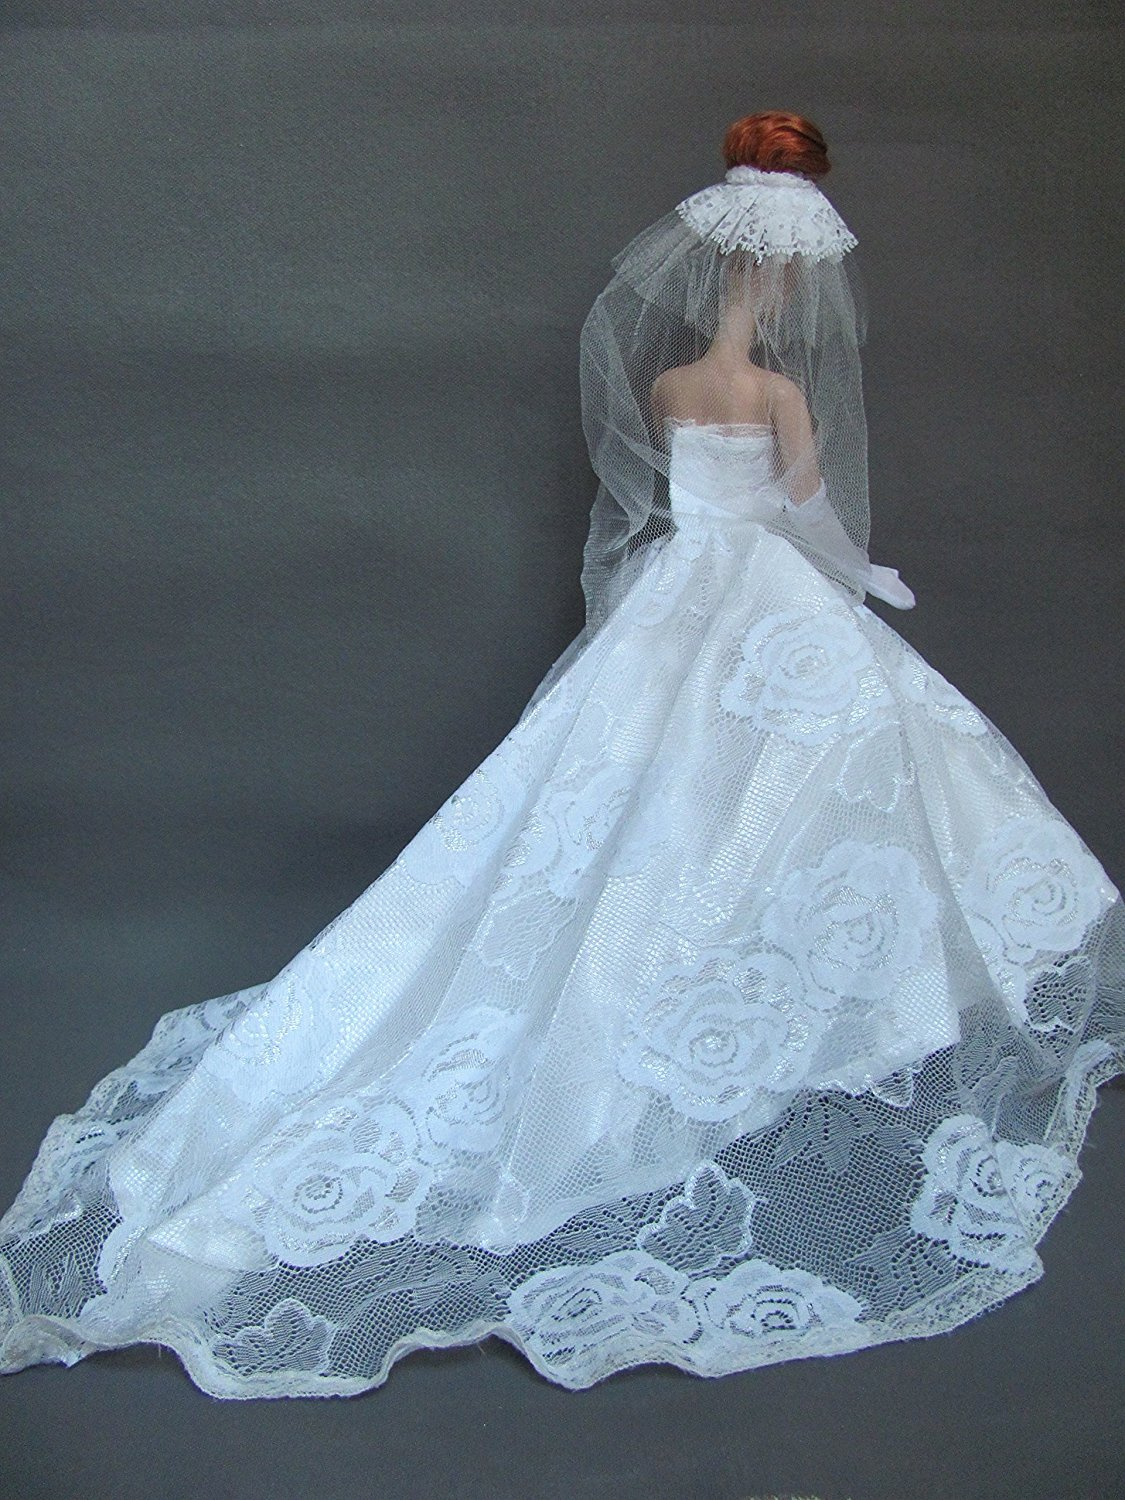 Cheap Dolls Bridal, find Dolls Bridal deals on line at Alibaba.com